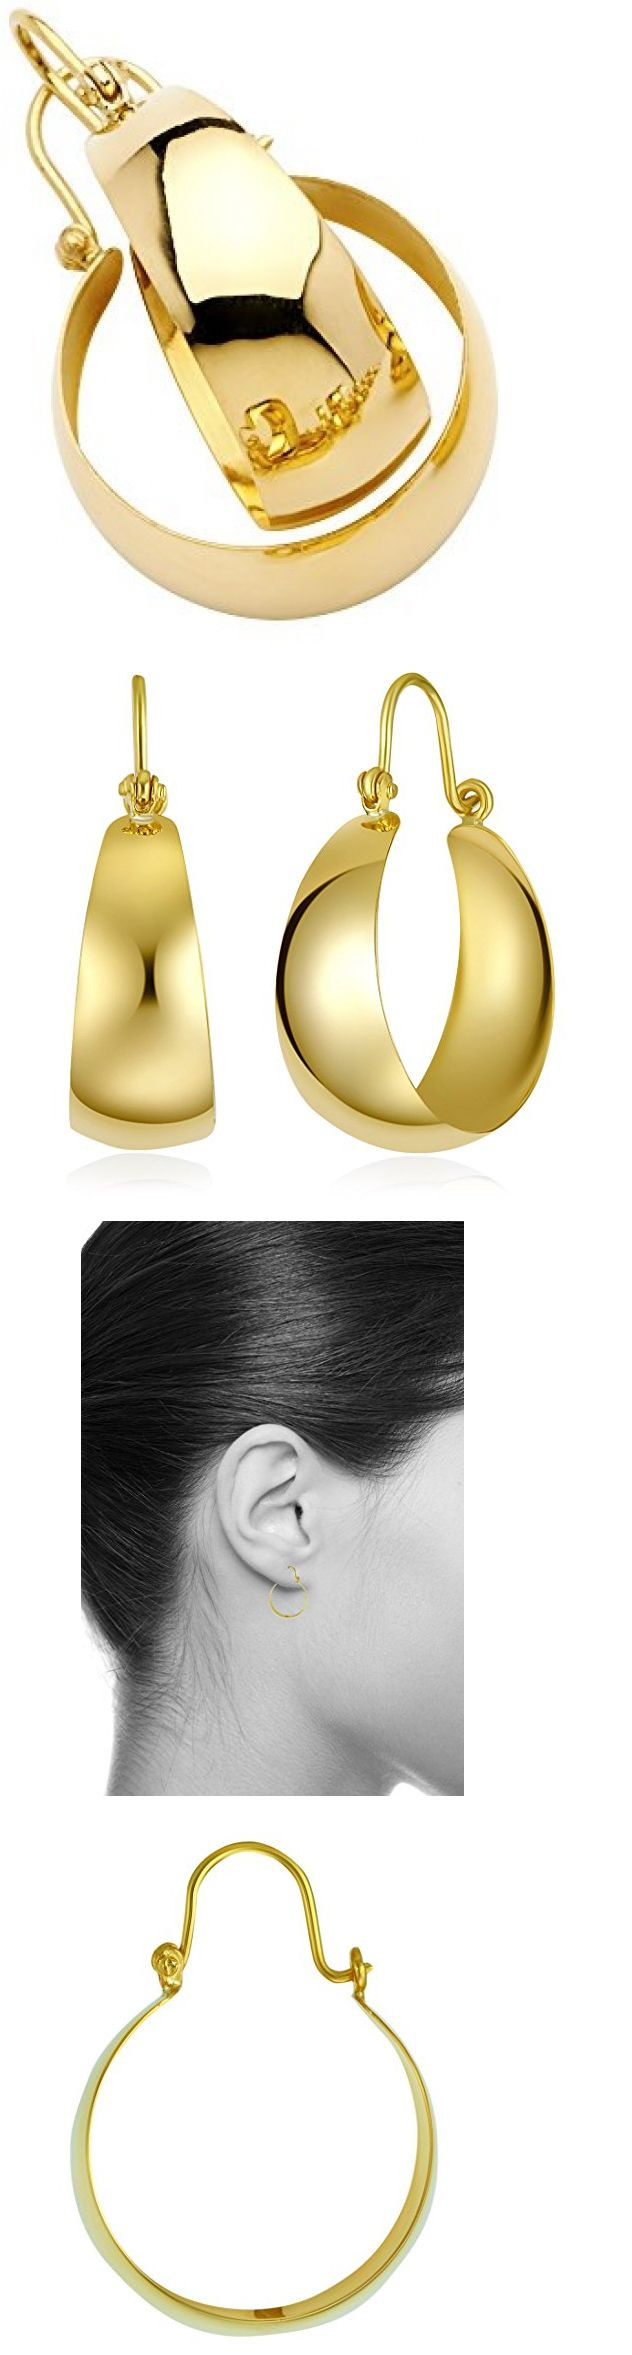 Precious Metal Without Stones 164319 Solid 14k Yellow Gold Plain Graduated Hoop Earrings 20mm